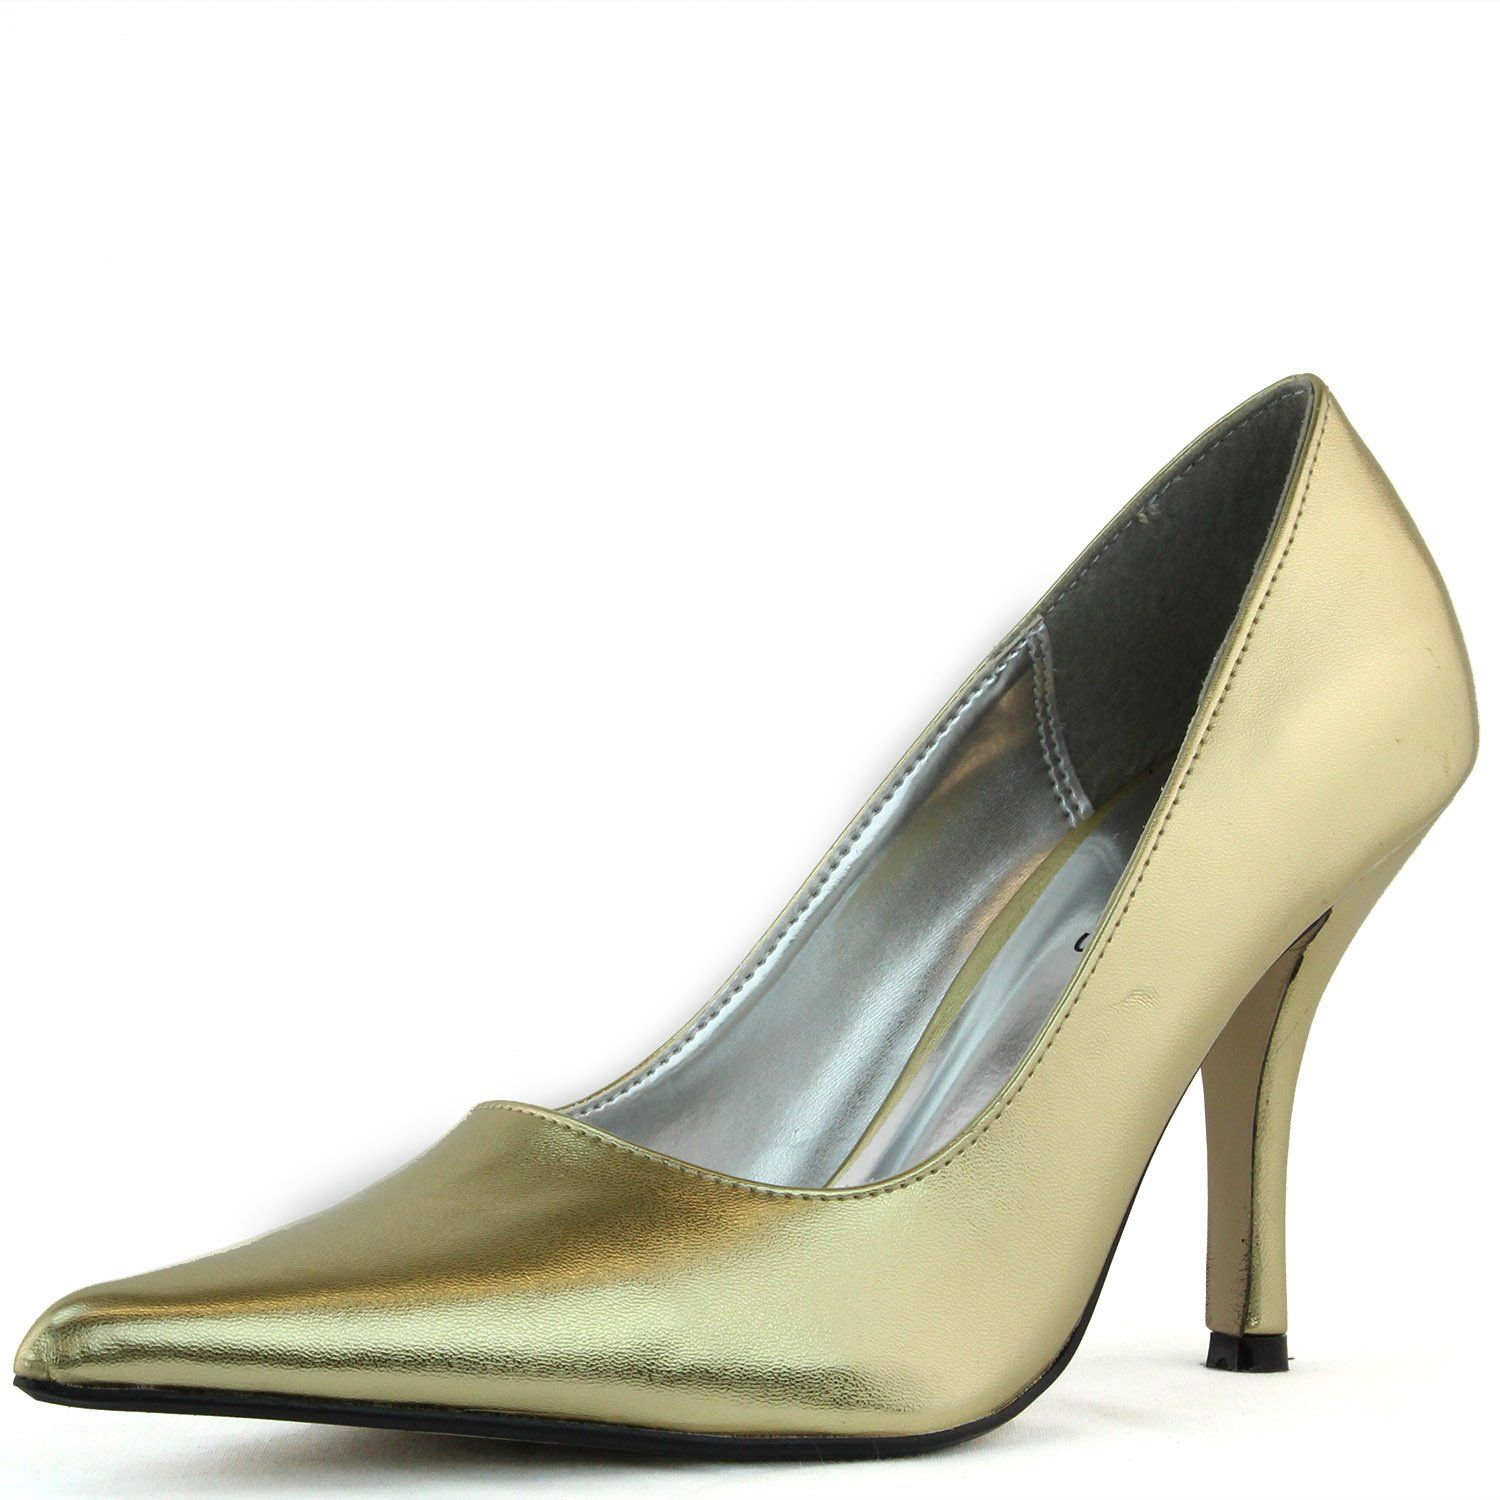 Womenus trendsup cosmo metallic gold color pointy pumps shoes